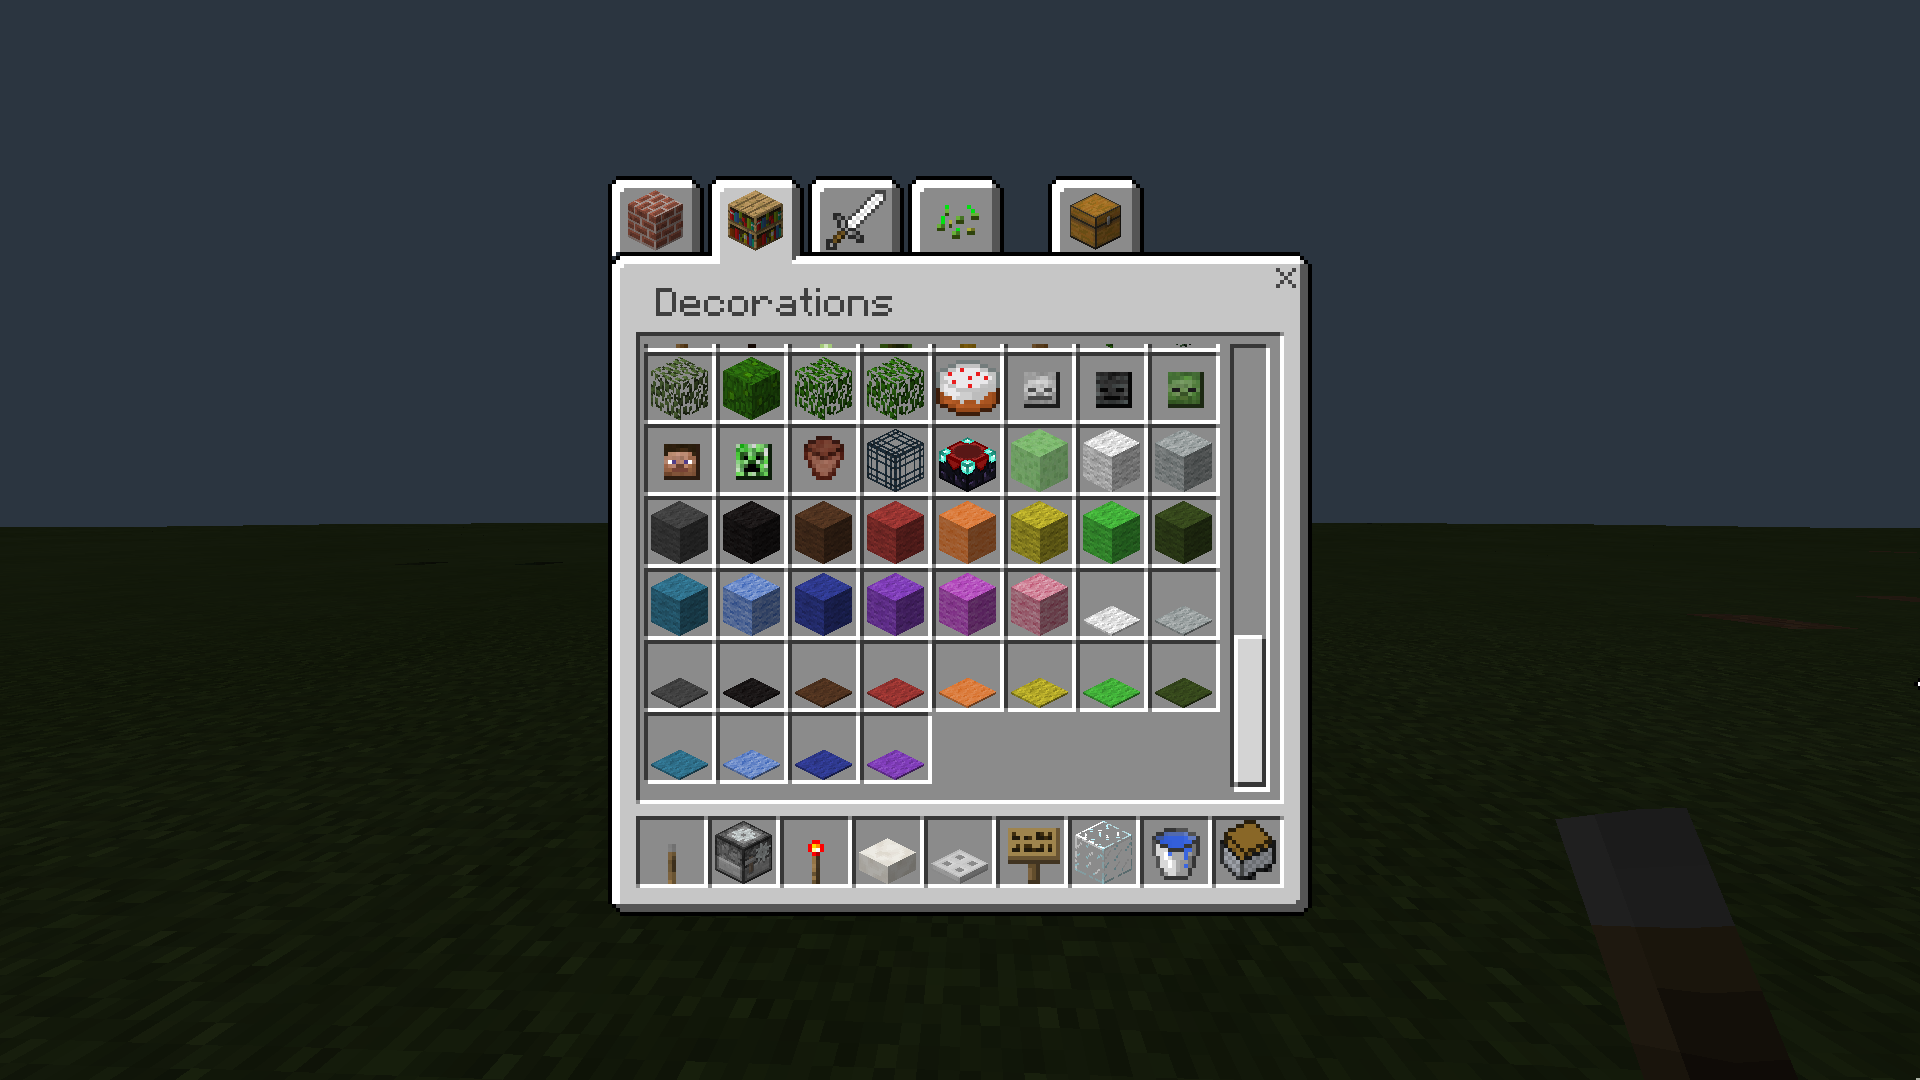 MCPE-13936] Some carpets are missing in Minecraft Windows 10